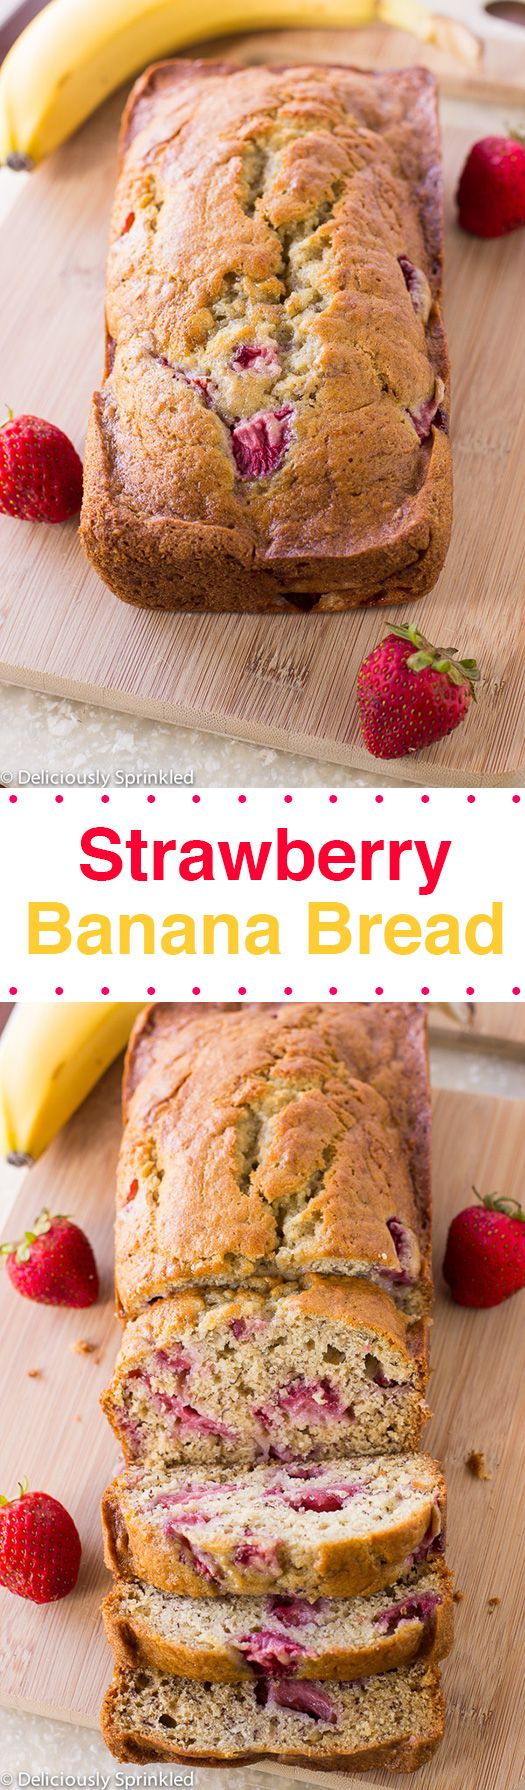 Strawberry Banana Bread - I can't wait to try this